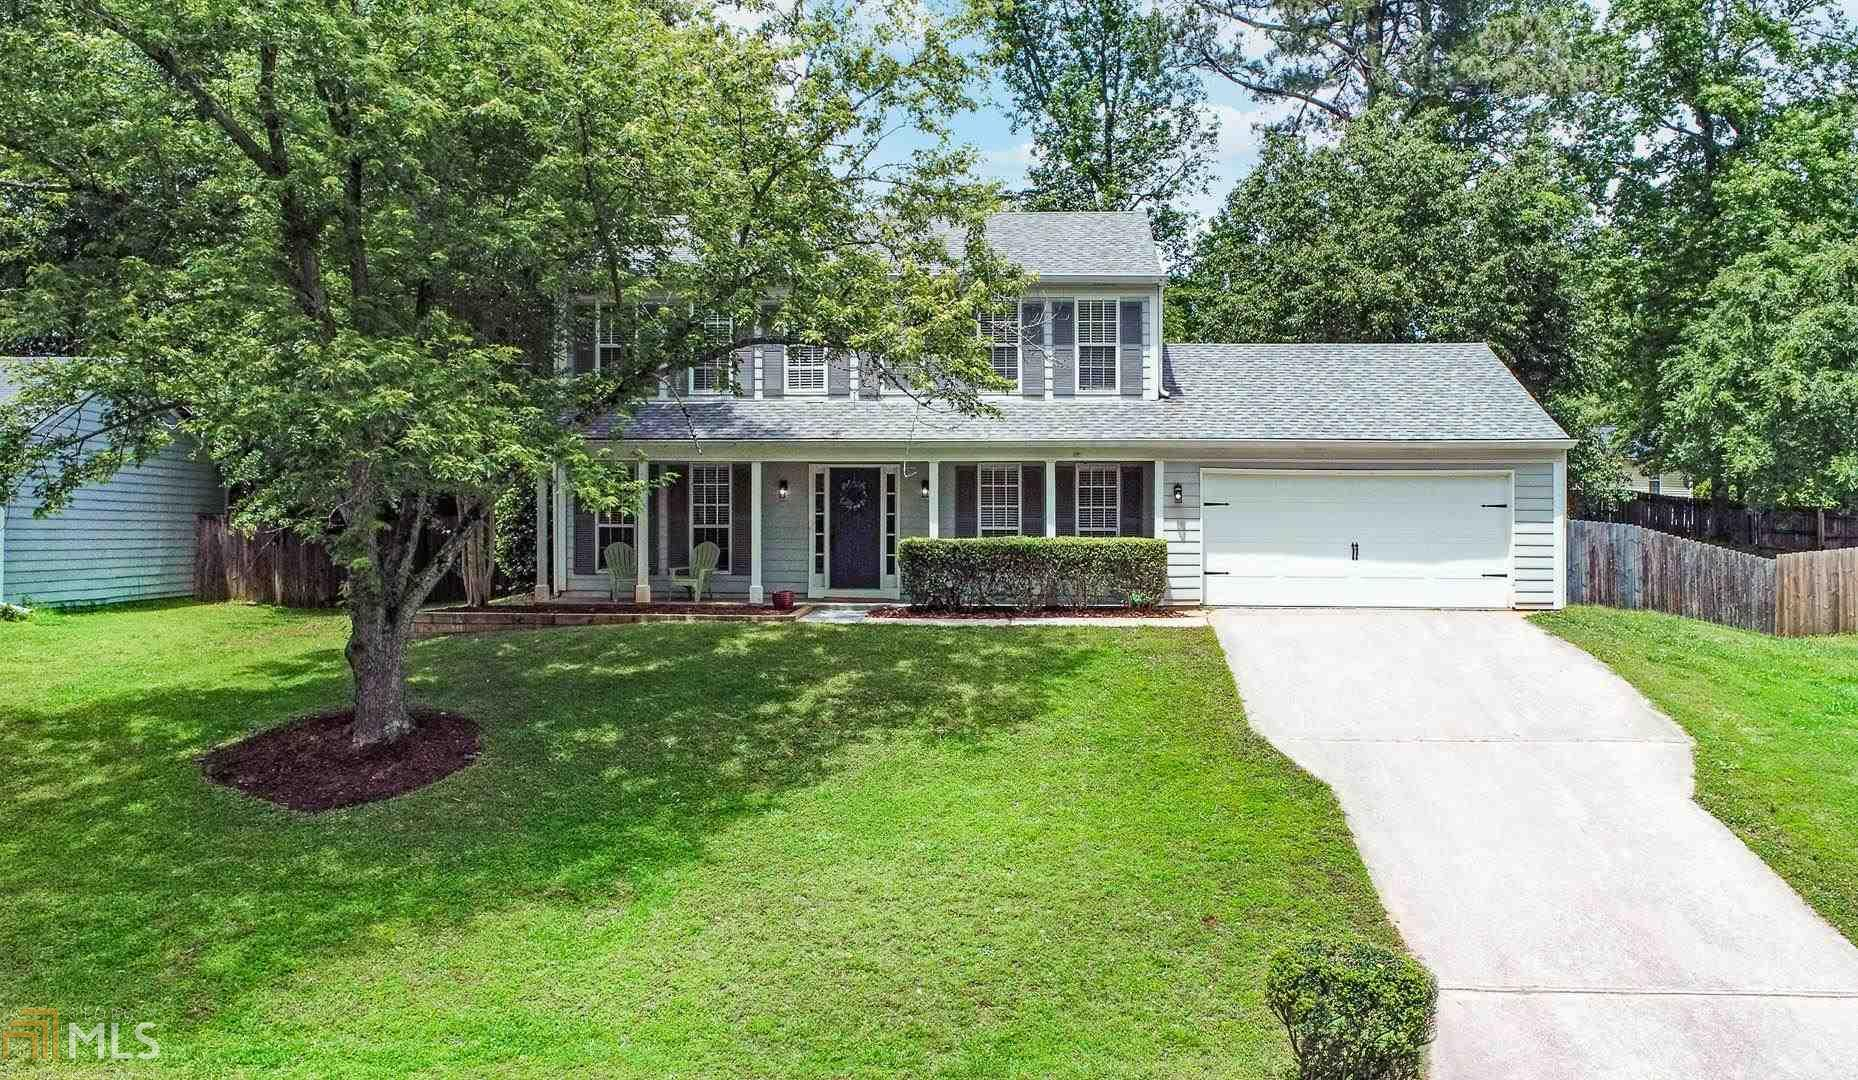 Image for property 1000 Cranberry Crk, Roswell, GA 30076-2379